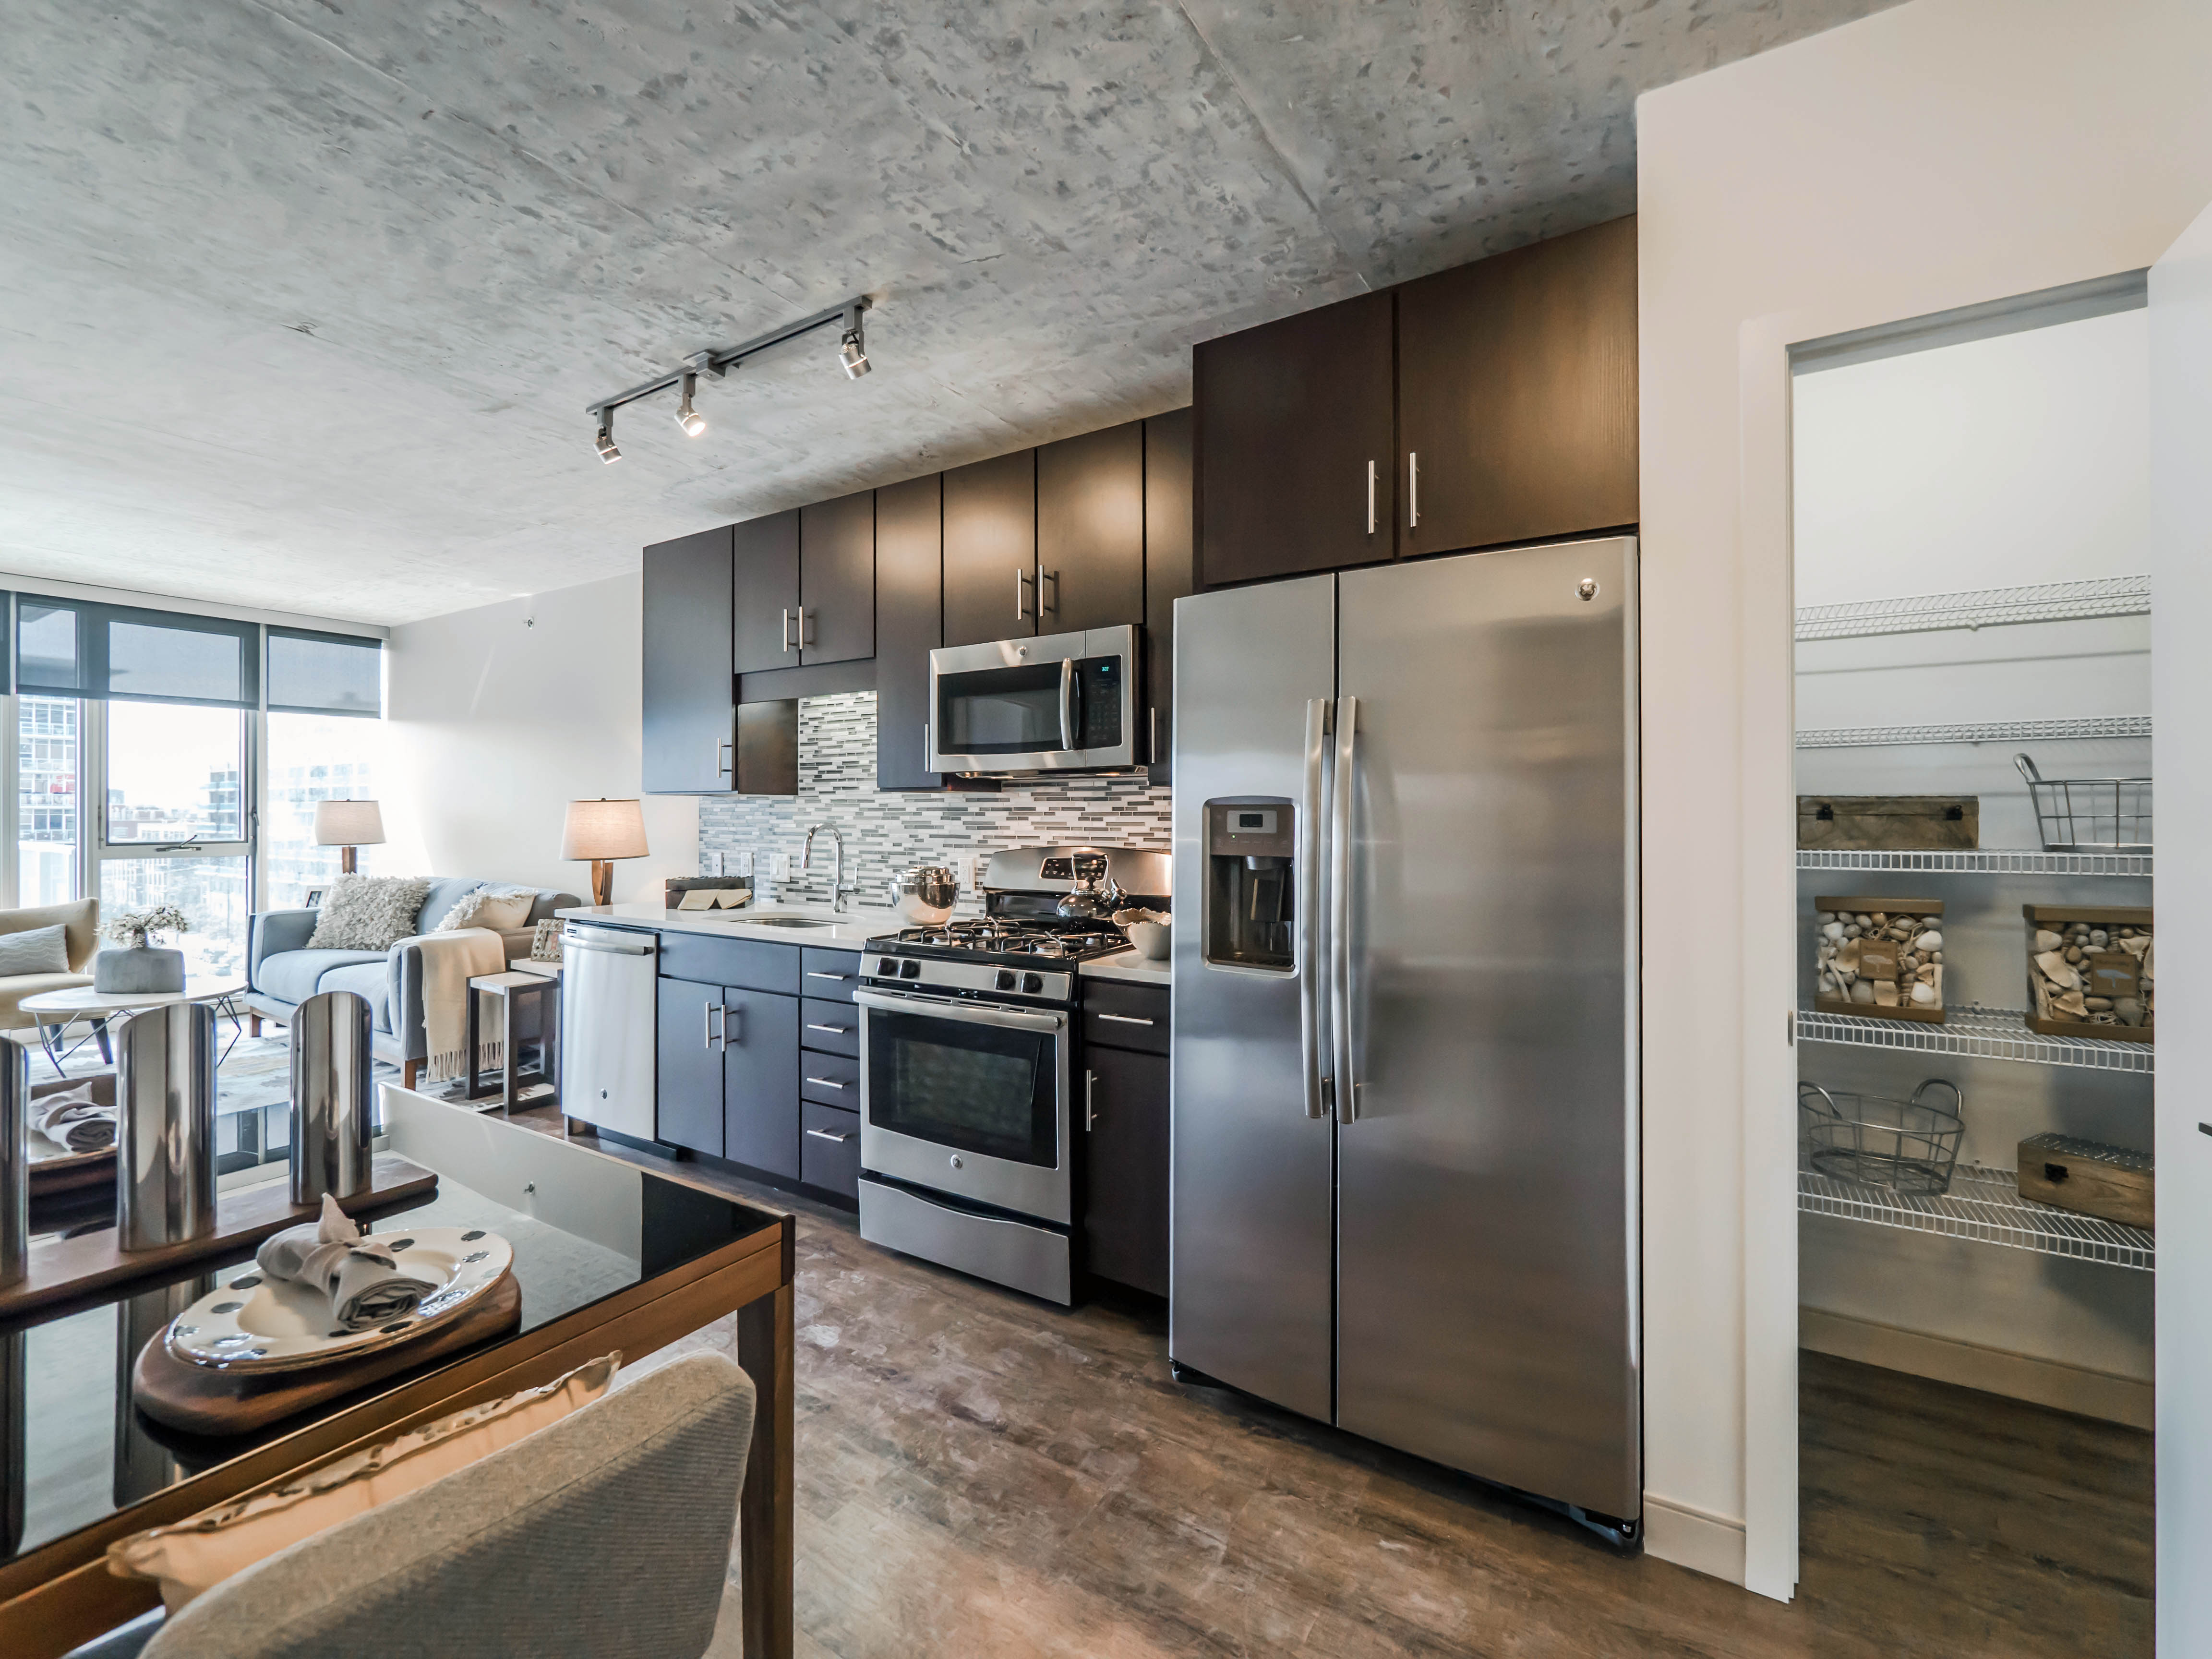 Awe Inspiring Downtown Chicago Apartment Deals And Finds 7 17 15 Yochicago Home Interior And Landscaping Ologienasavecom